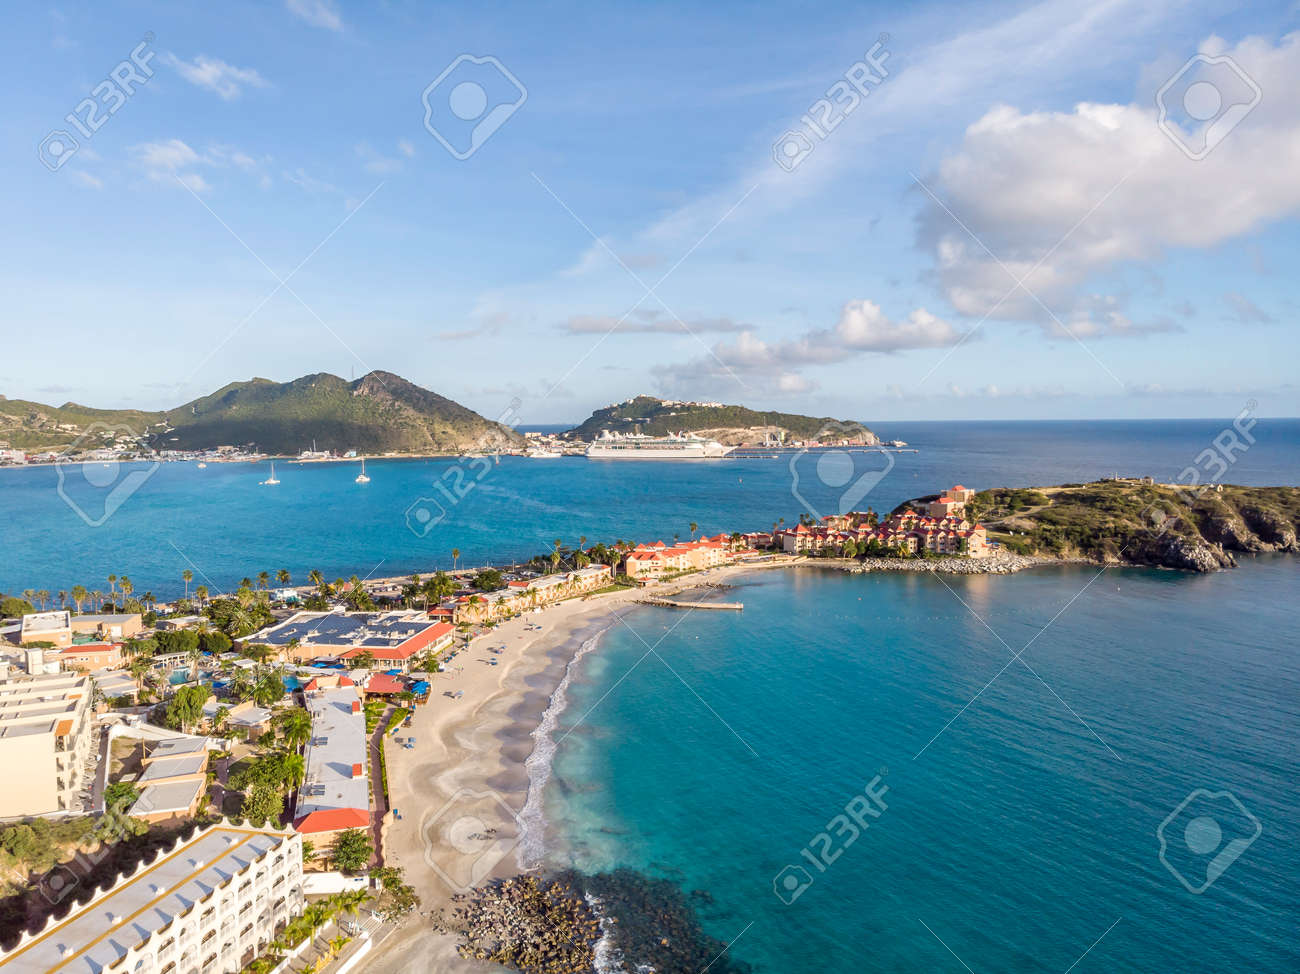 The caribbean island of St.Maarten landscape and cityscape. - 163349051